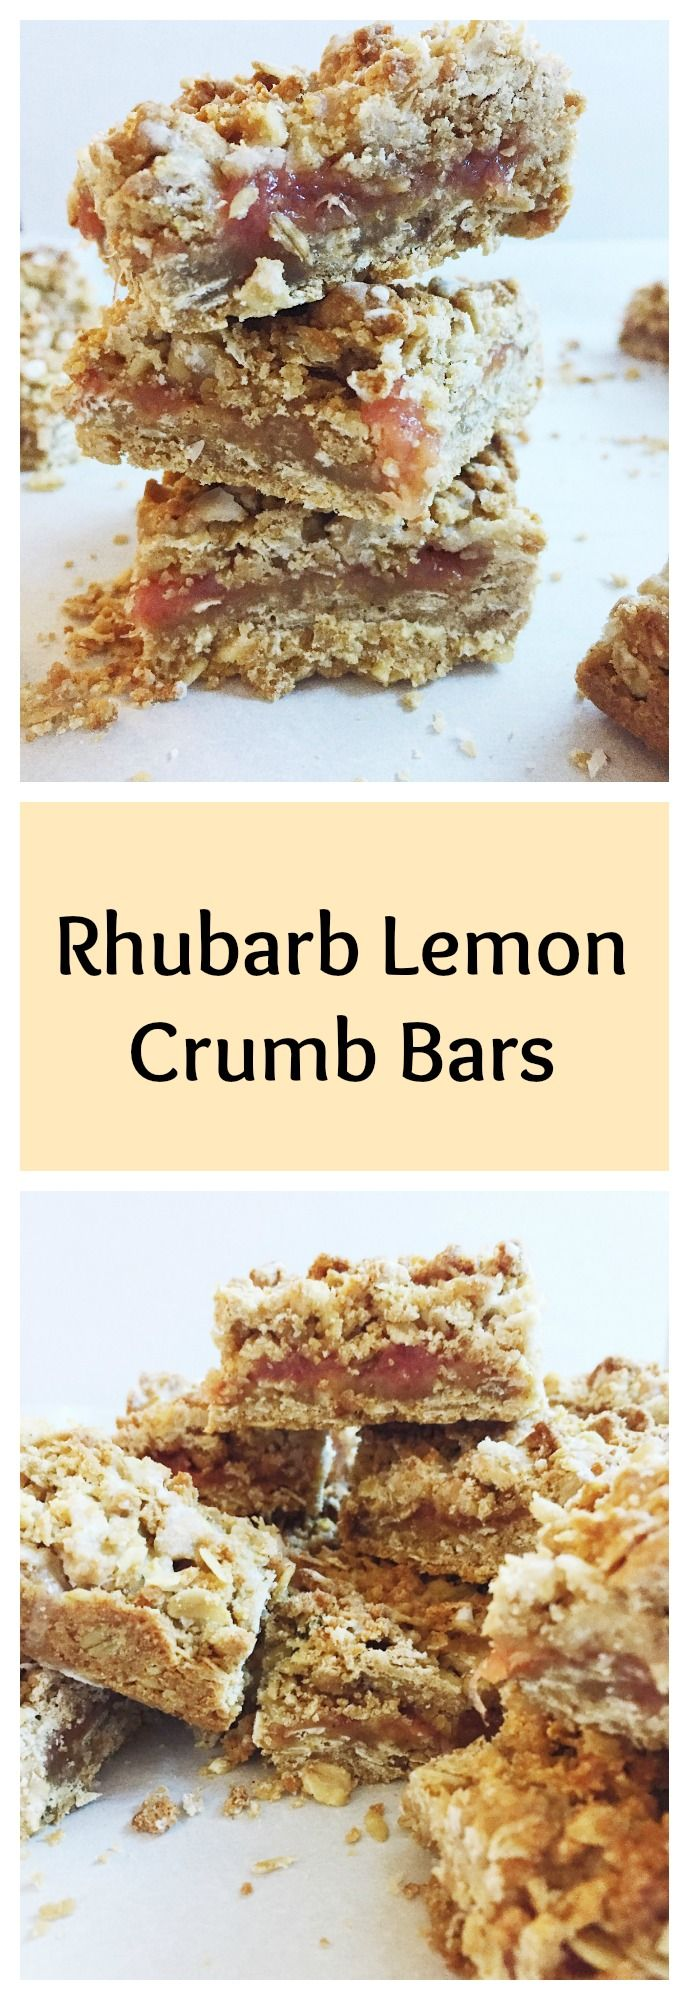 Ever want a different way to bake with rhubarb? These rhubarb lemon crumb bars feature a tart rhubarb jam sandwiched between two layers of buttery oat crumb crust and are topped off with a lemony glaze. Always a spring treat, these crumb bars are perfect for any occasion!